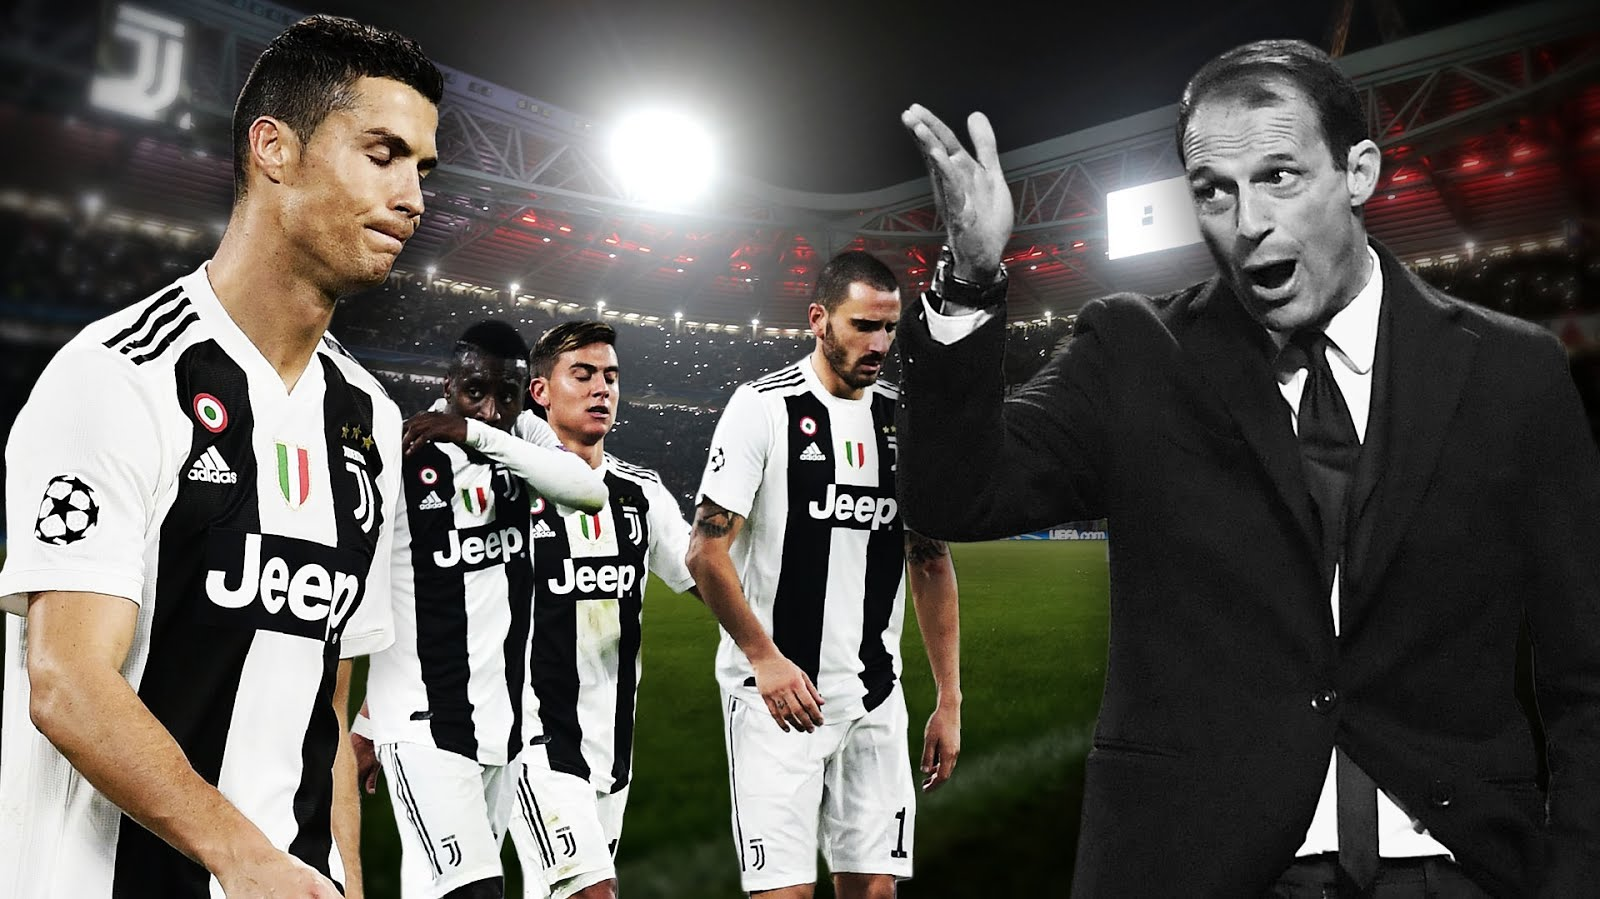 Rojadirecta Juventus Atalanta Streaming Diretta TV, dove vedere l'ultima partita di Allegri all'Allianz Stadium.